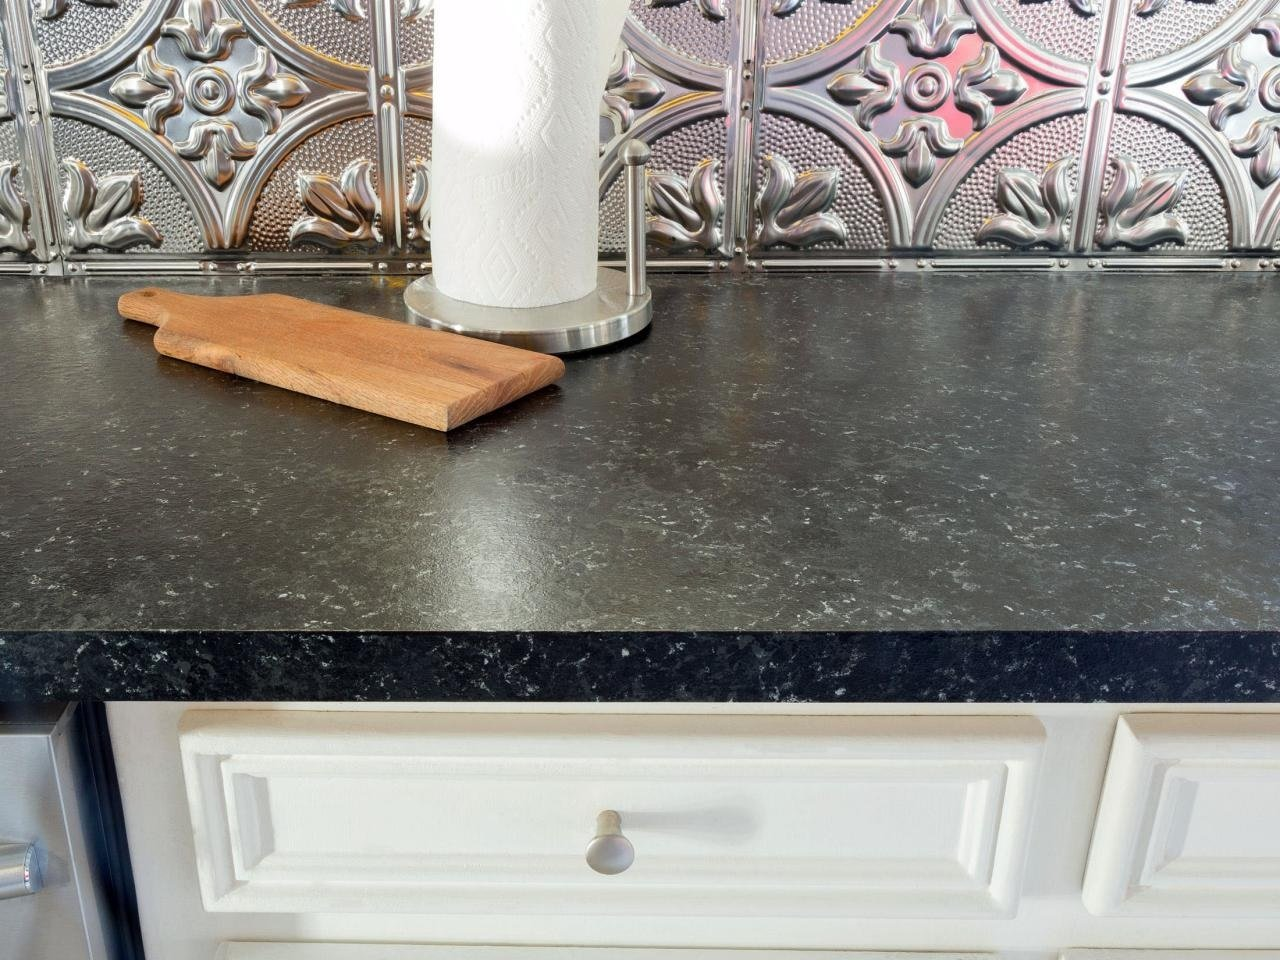 Laminate countertop image